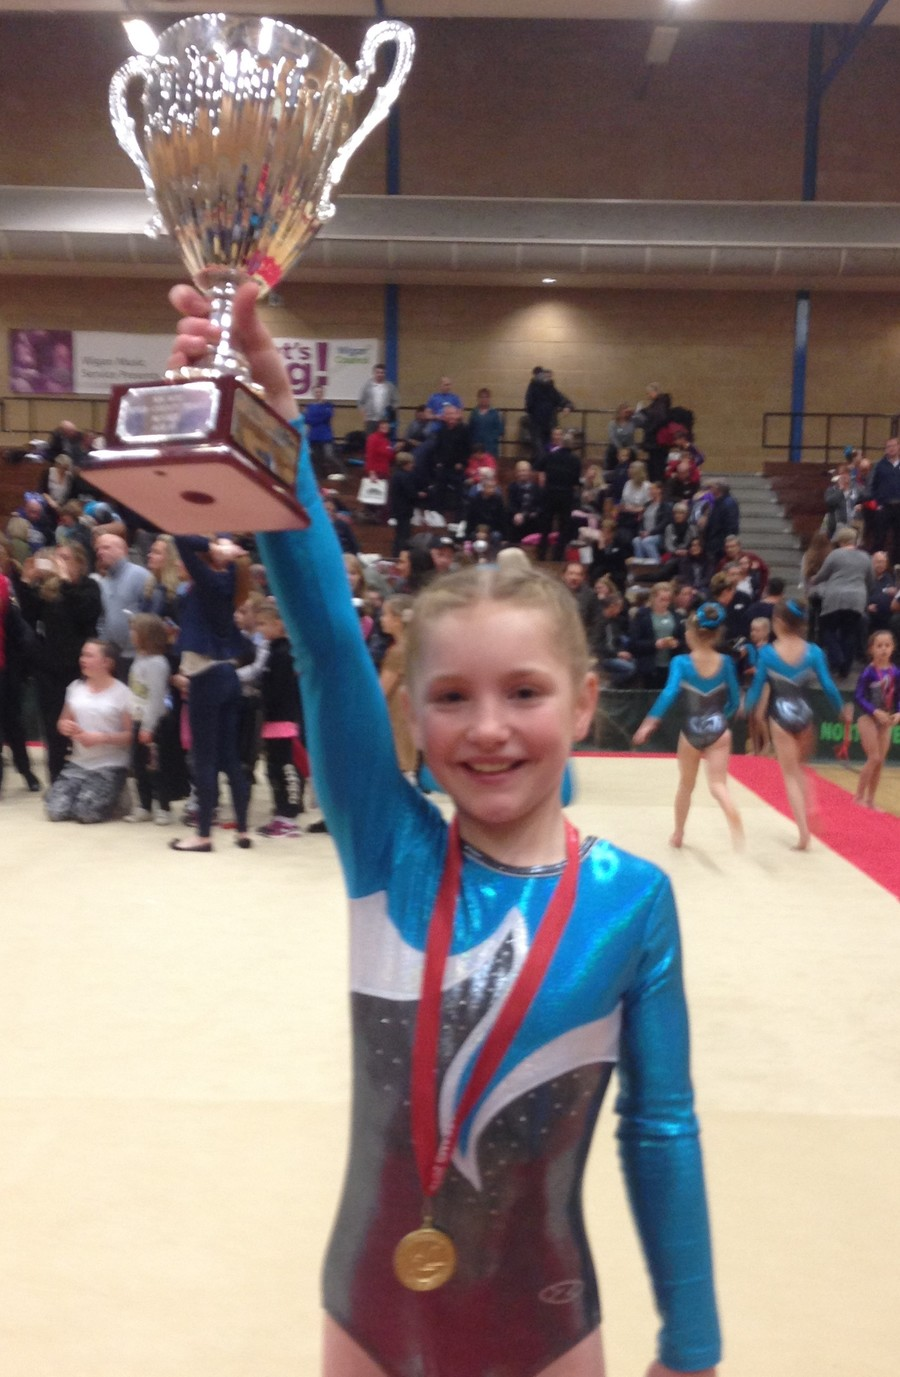 Congratulations to Lois Walker who along with four other girls won gold competing on uneven bars, vault, beam and floor. They will also be representing Greater Manchester in the Inter County North West Gymnastics Championships.